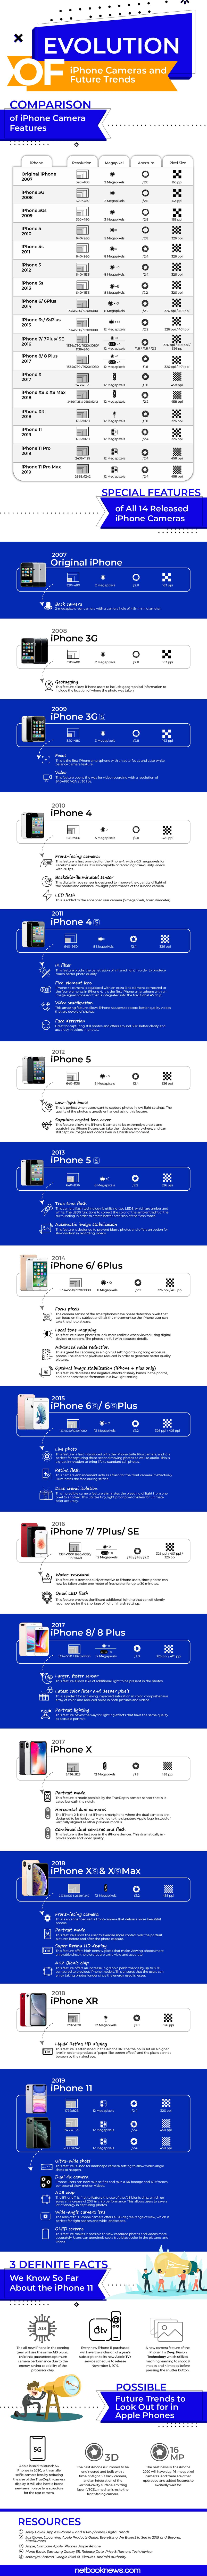 Evolution Of iPhone Cameras And Possible Future Trends Infographic